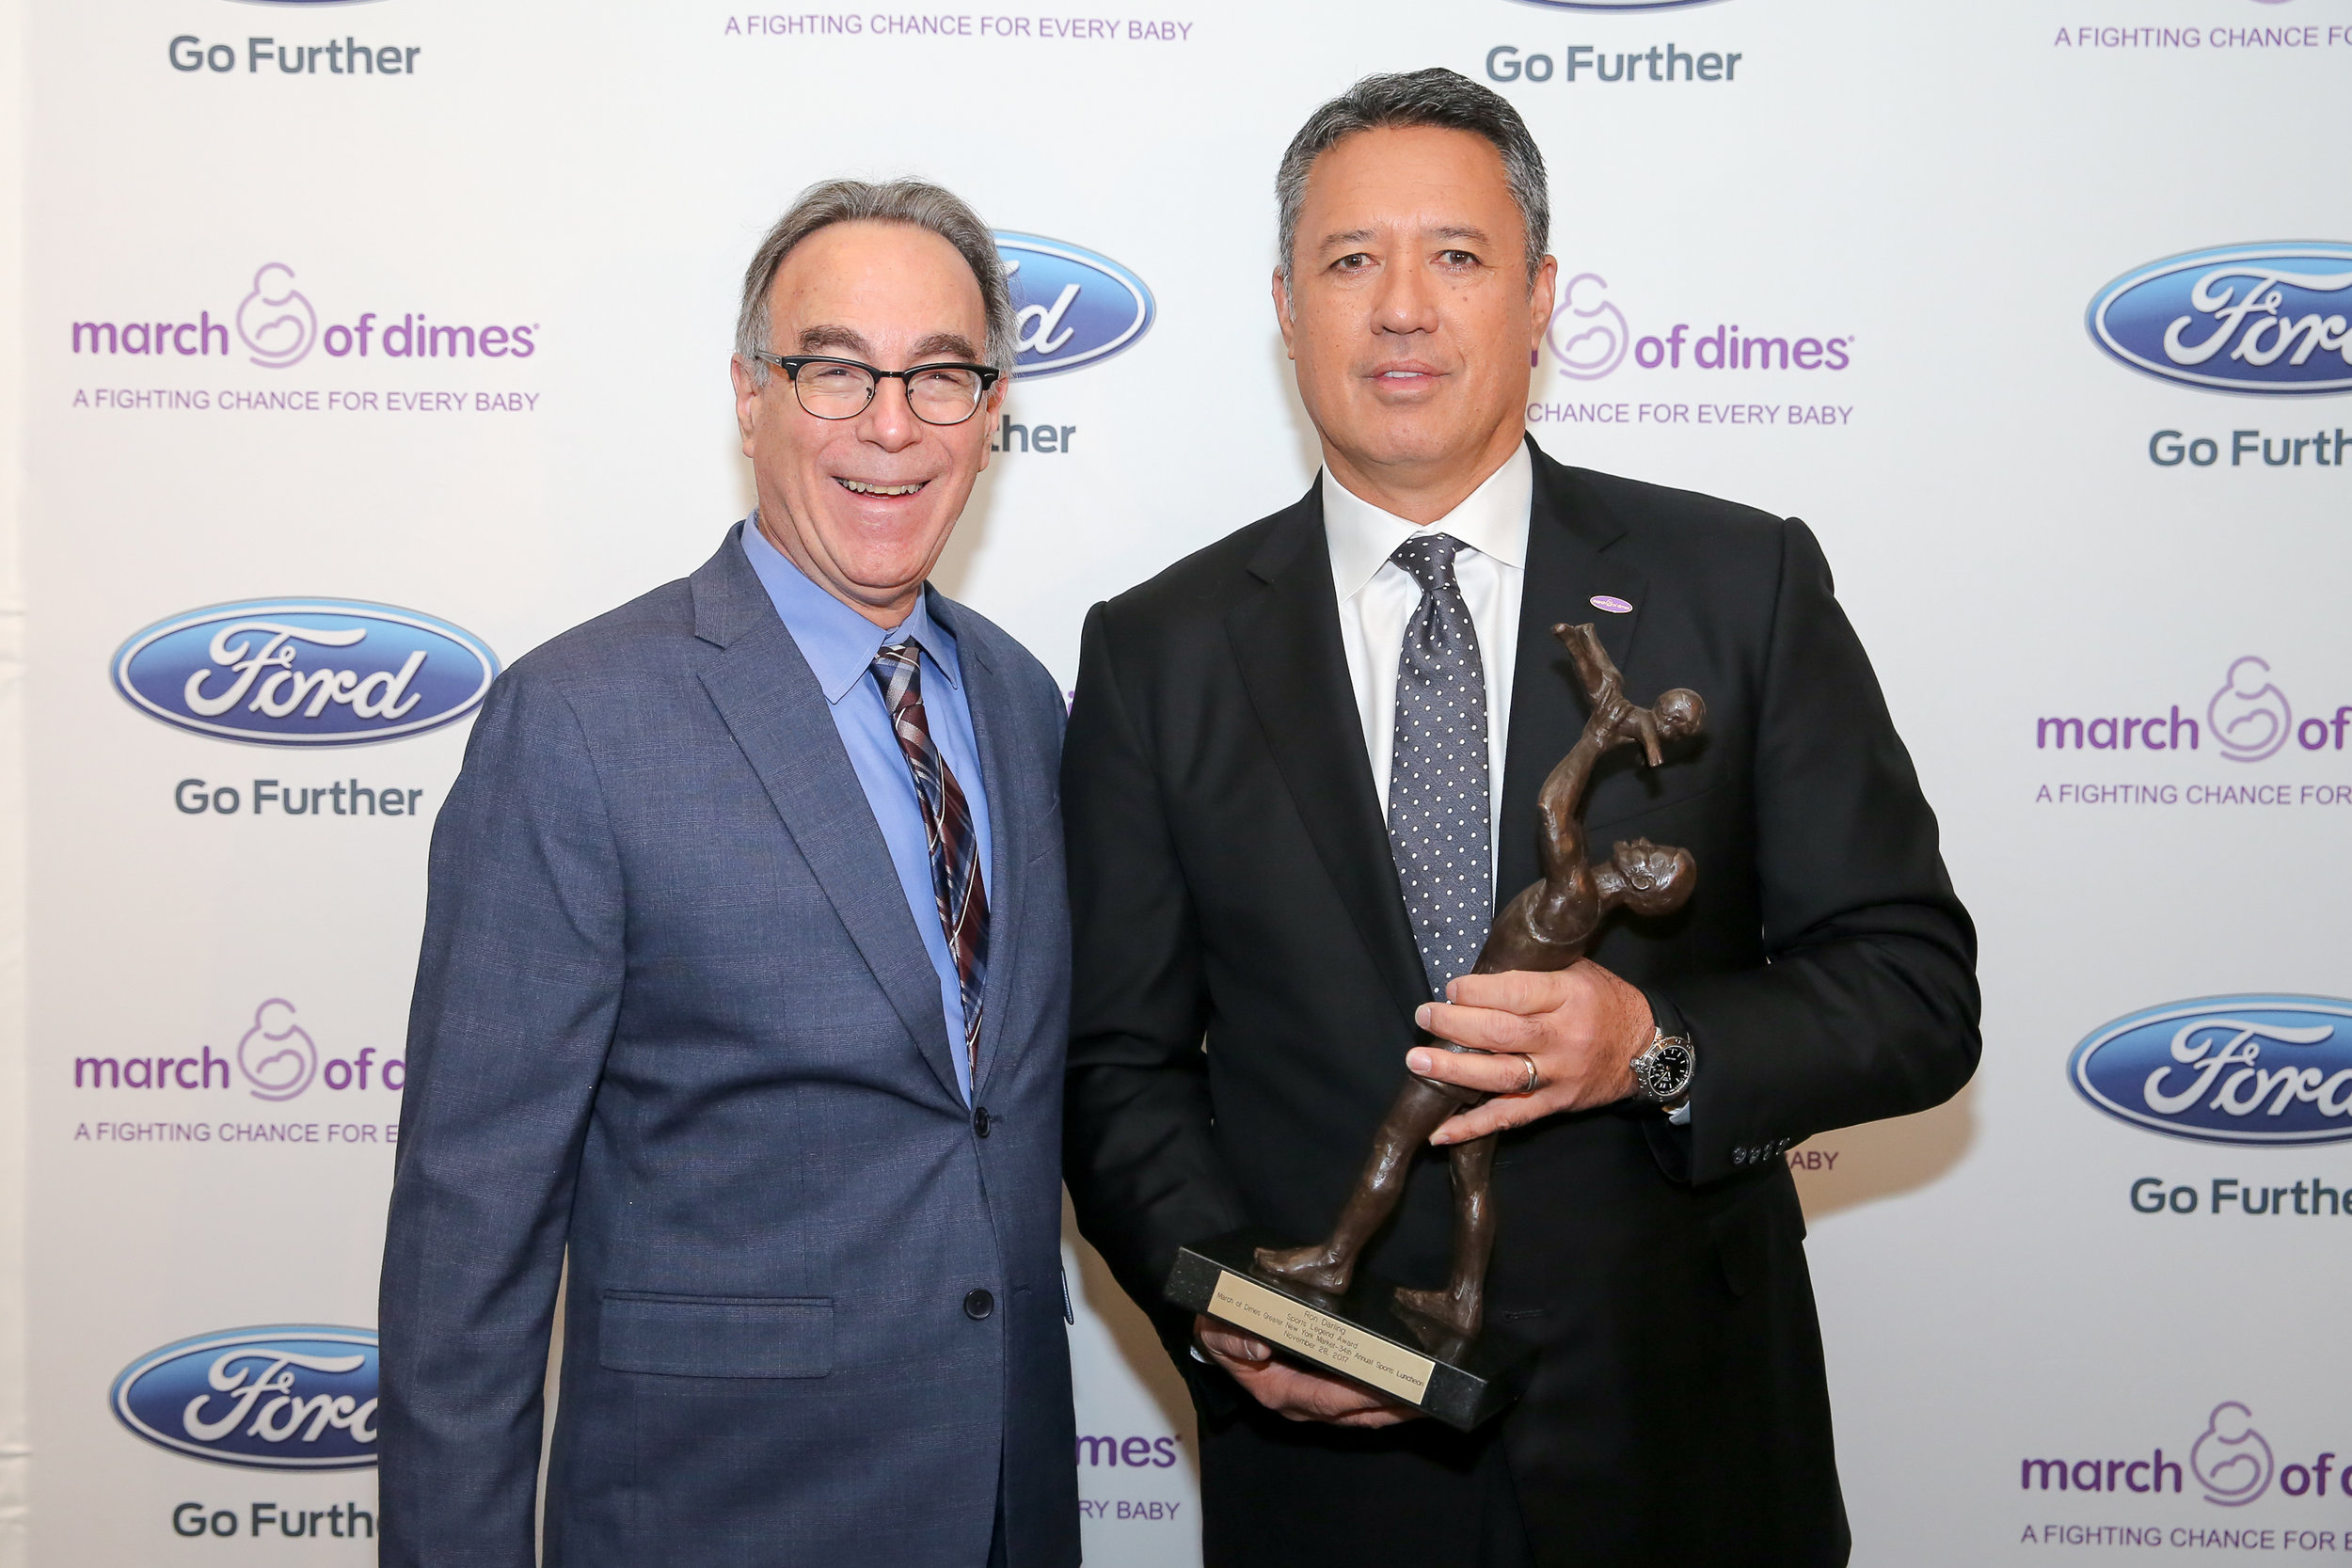 Mellon with honoree Ron Darling, sports broadcaster and former NY Mets star pitcher. Photos © Hechler Photography